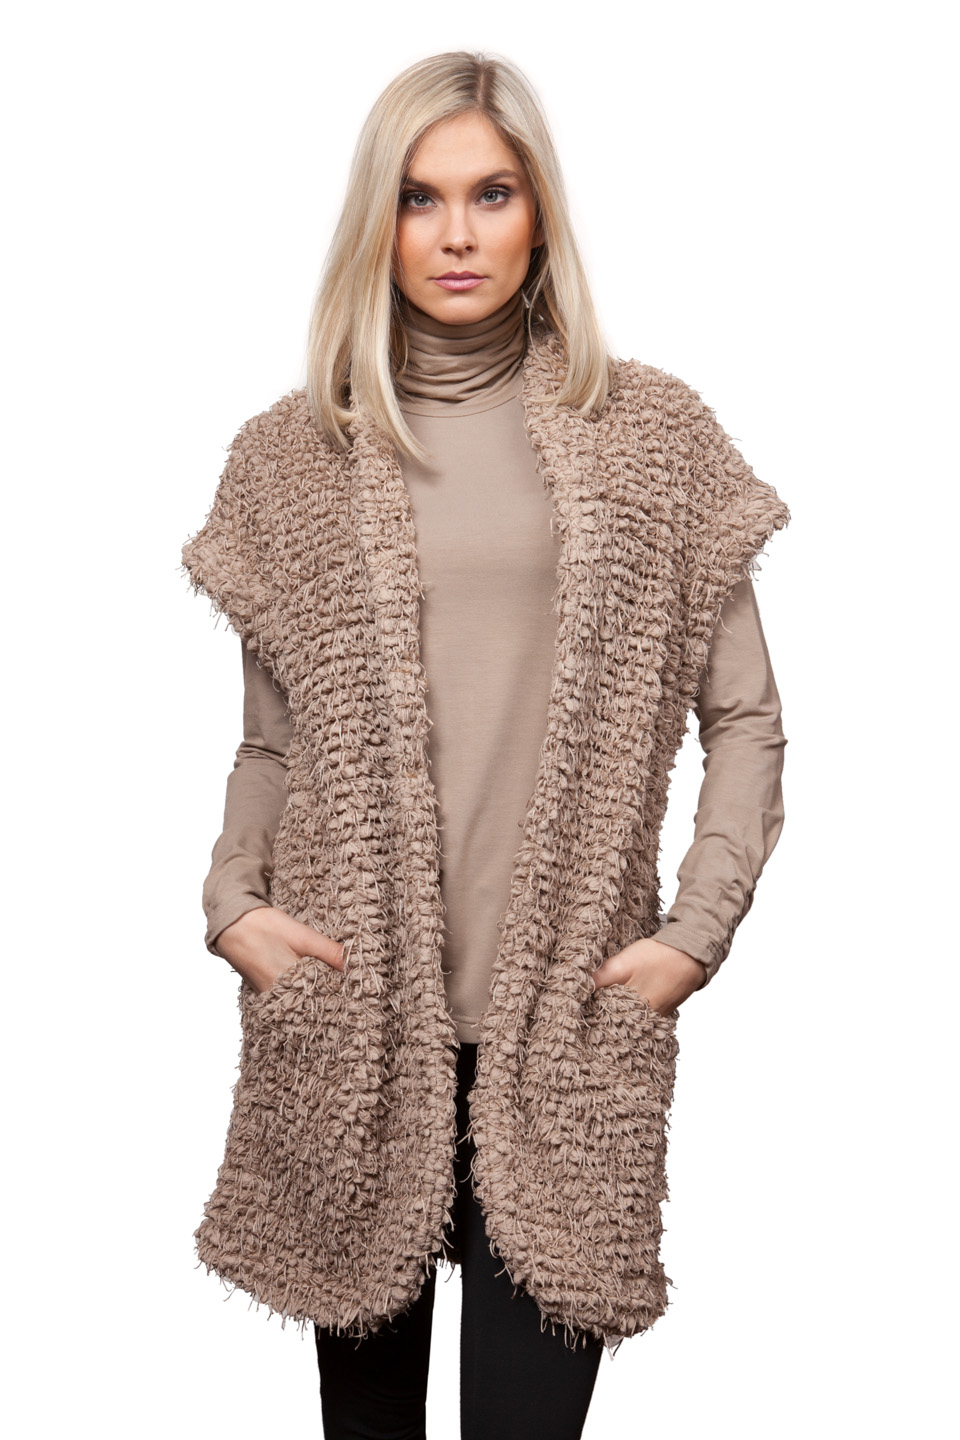 Copy of Style # 65275-16, p. 15<br>Faux Fur Poodle<br>Color: Mushroom, 2 colors<br>w/ Cashmerette Separates p. 7